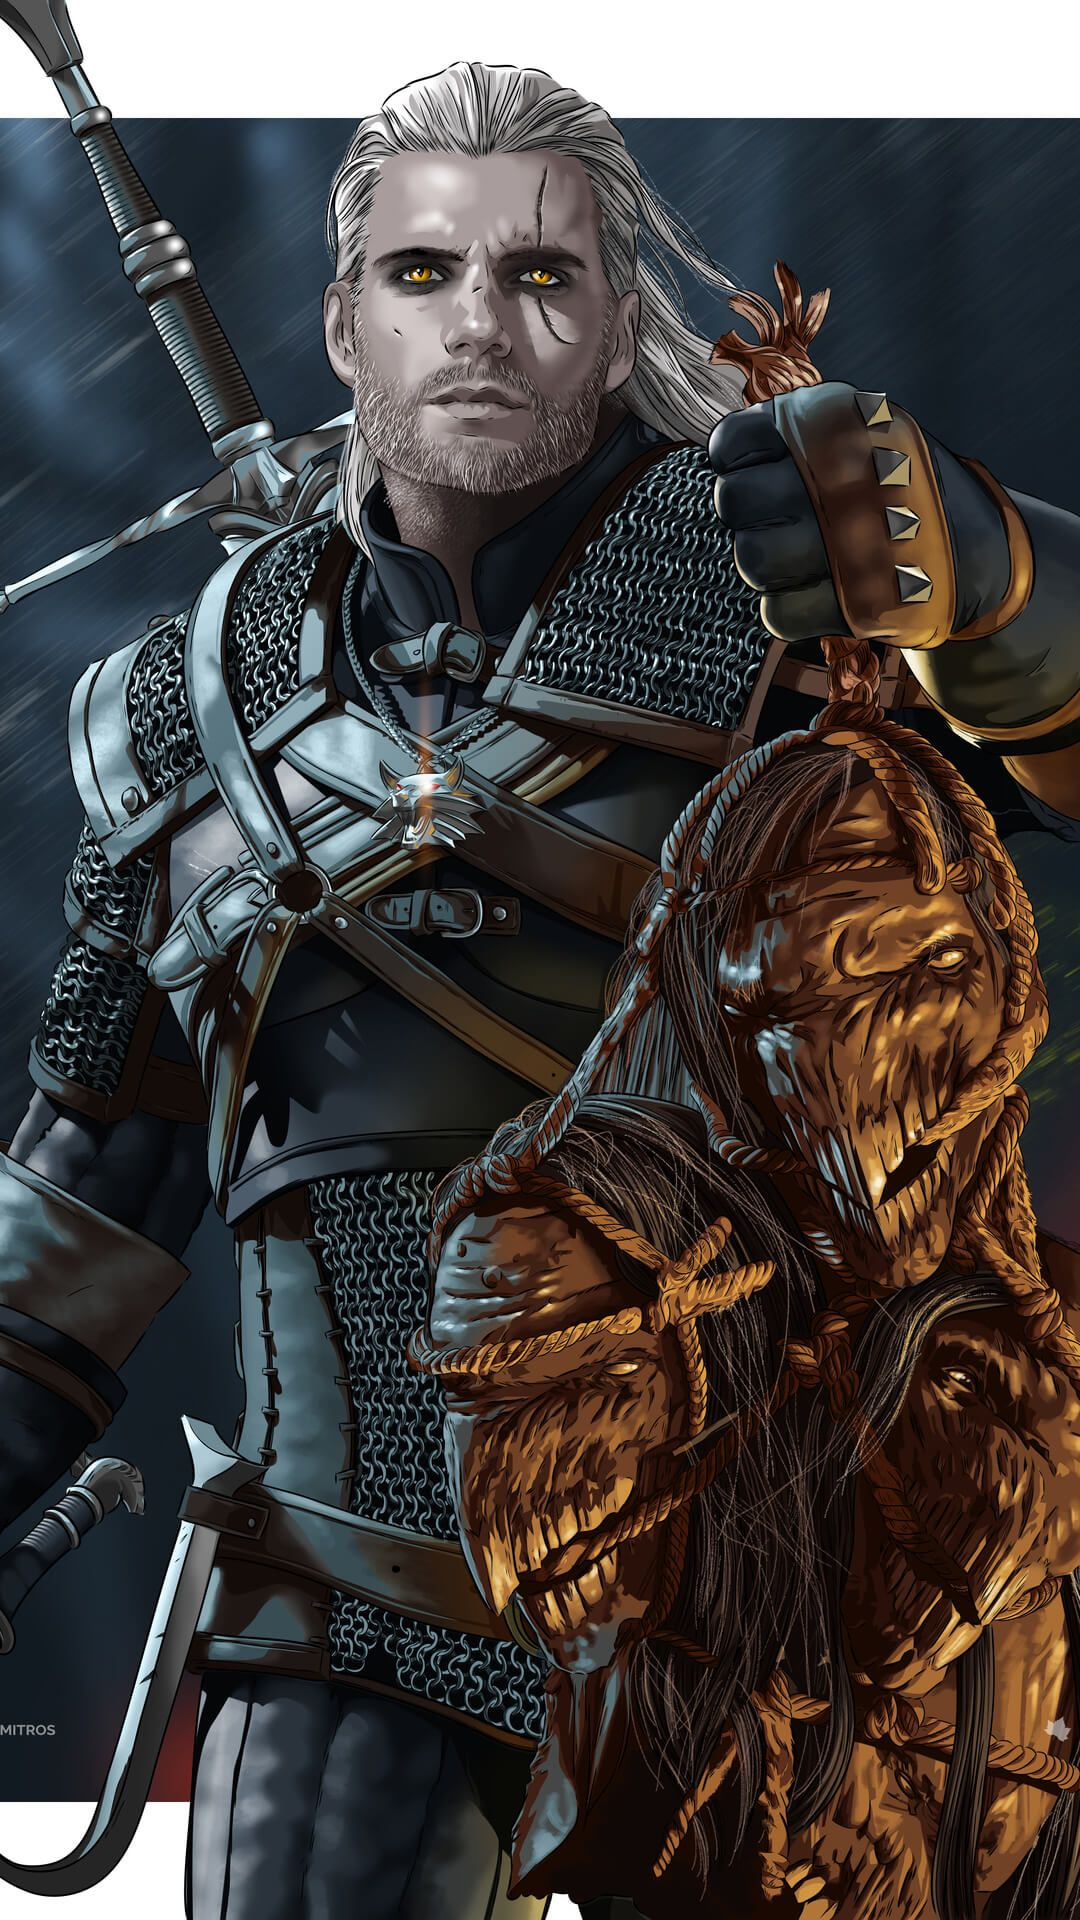 The Witcher Wallpapers Phone Background Mobile 4k Extracute S Collection Of 50 The Witcher Ideas In 2020